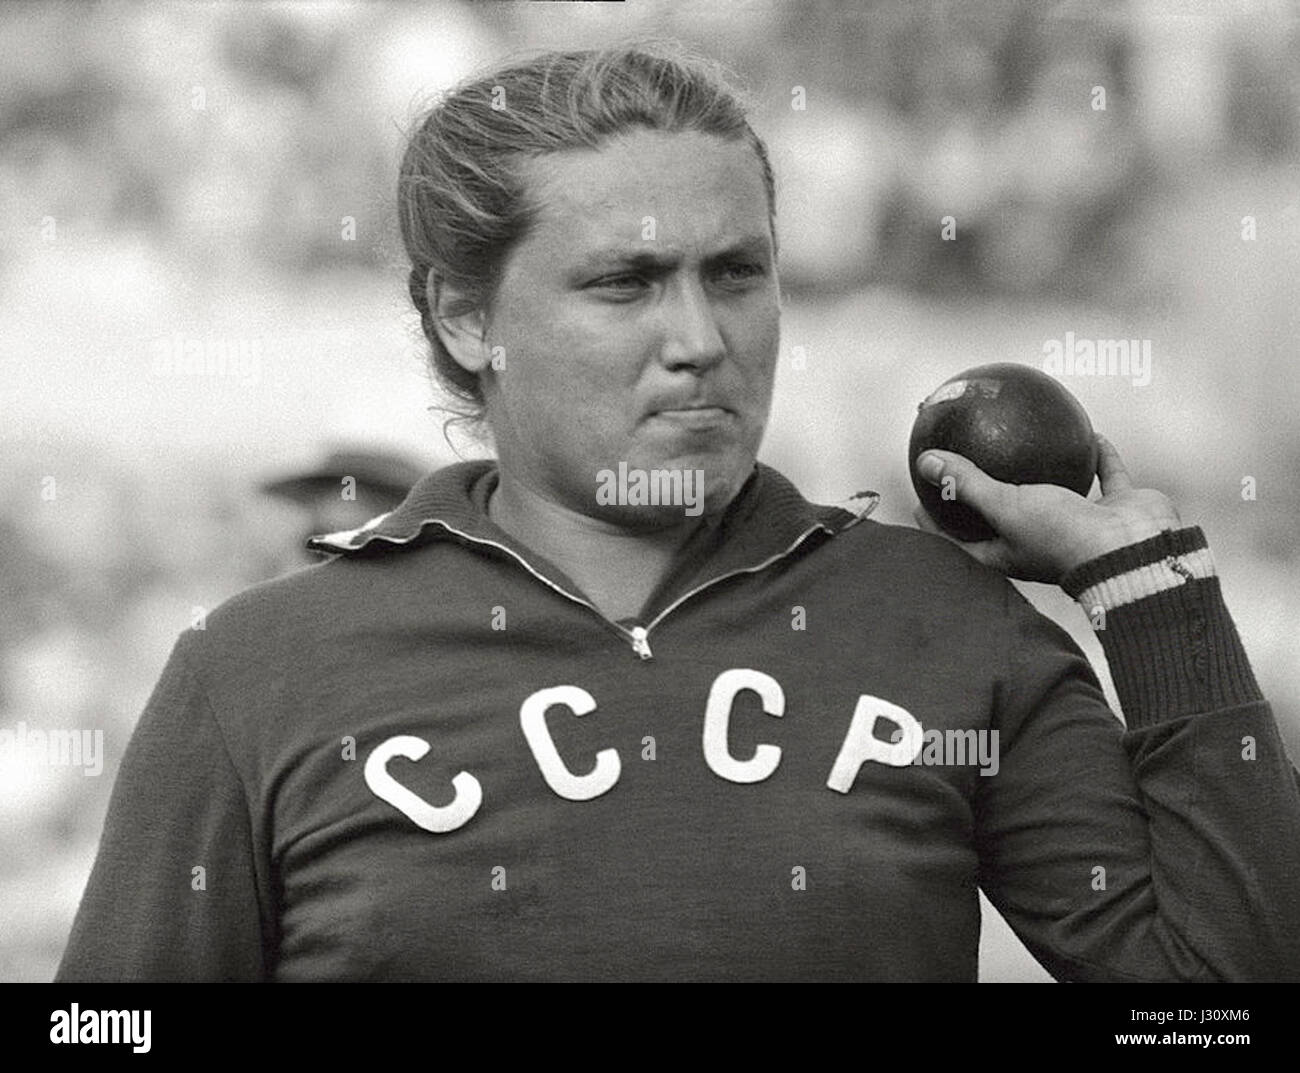 images Tamara Press 6 world records (shot put discus throw)